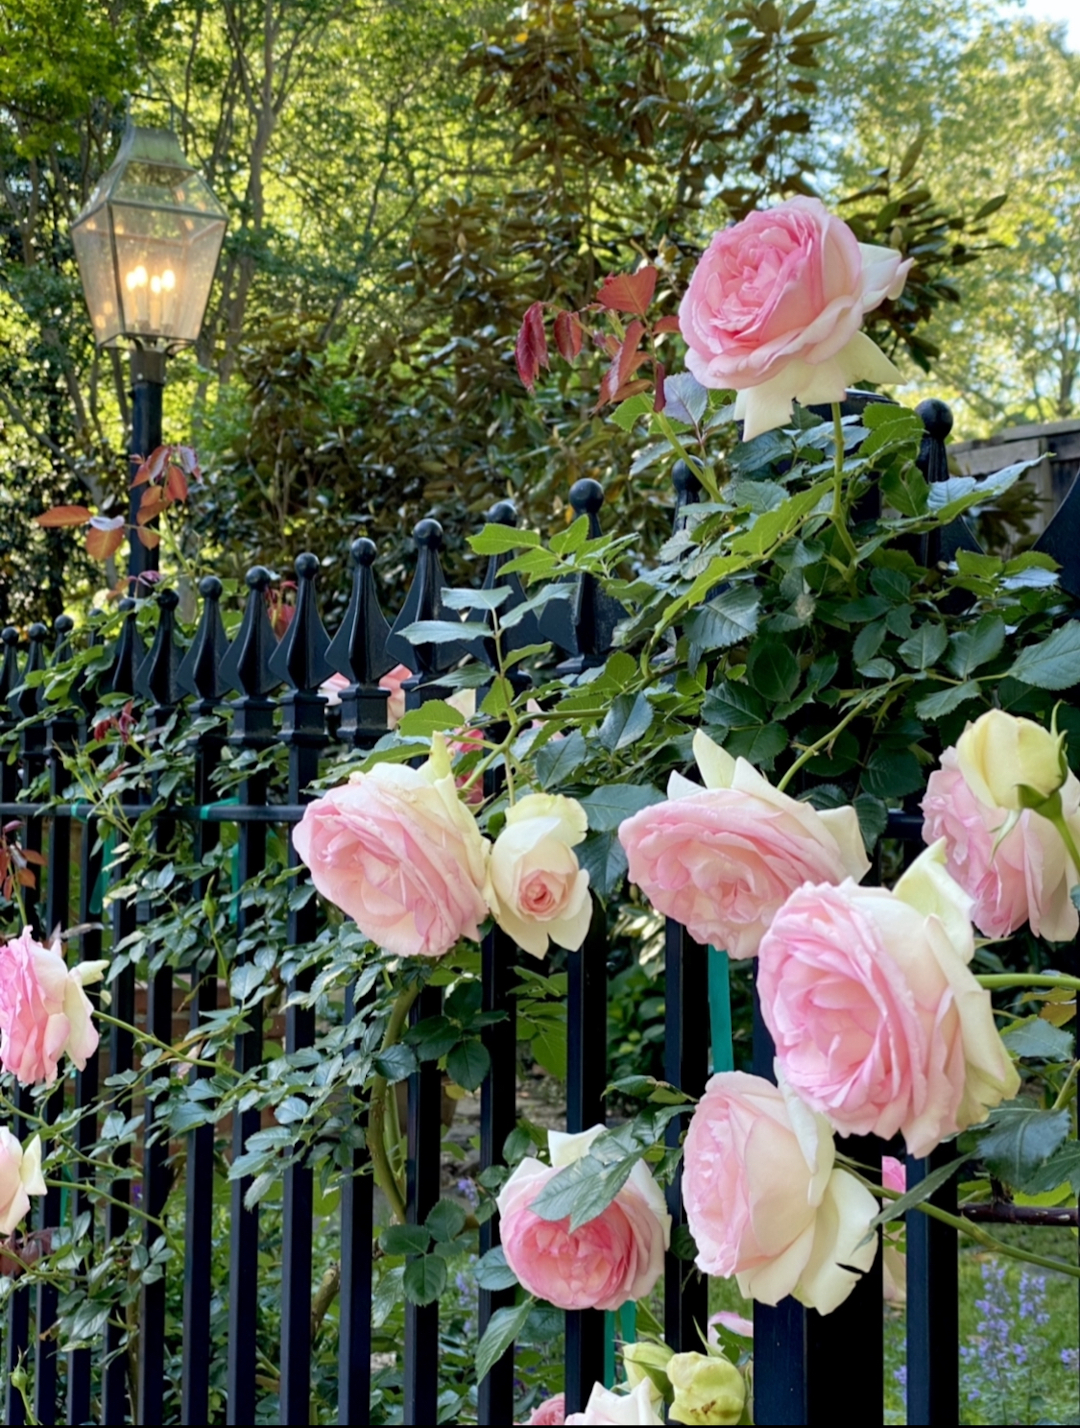 A black metal fence with roses growing along it